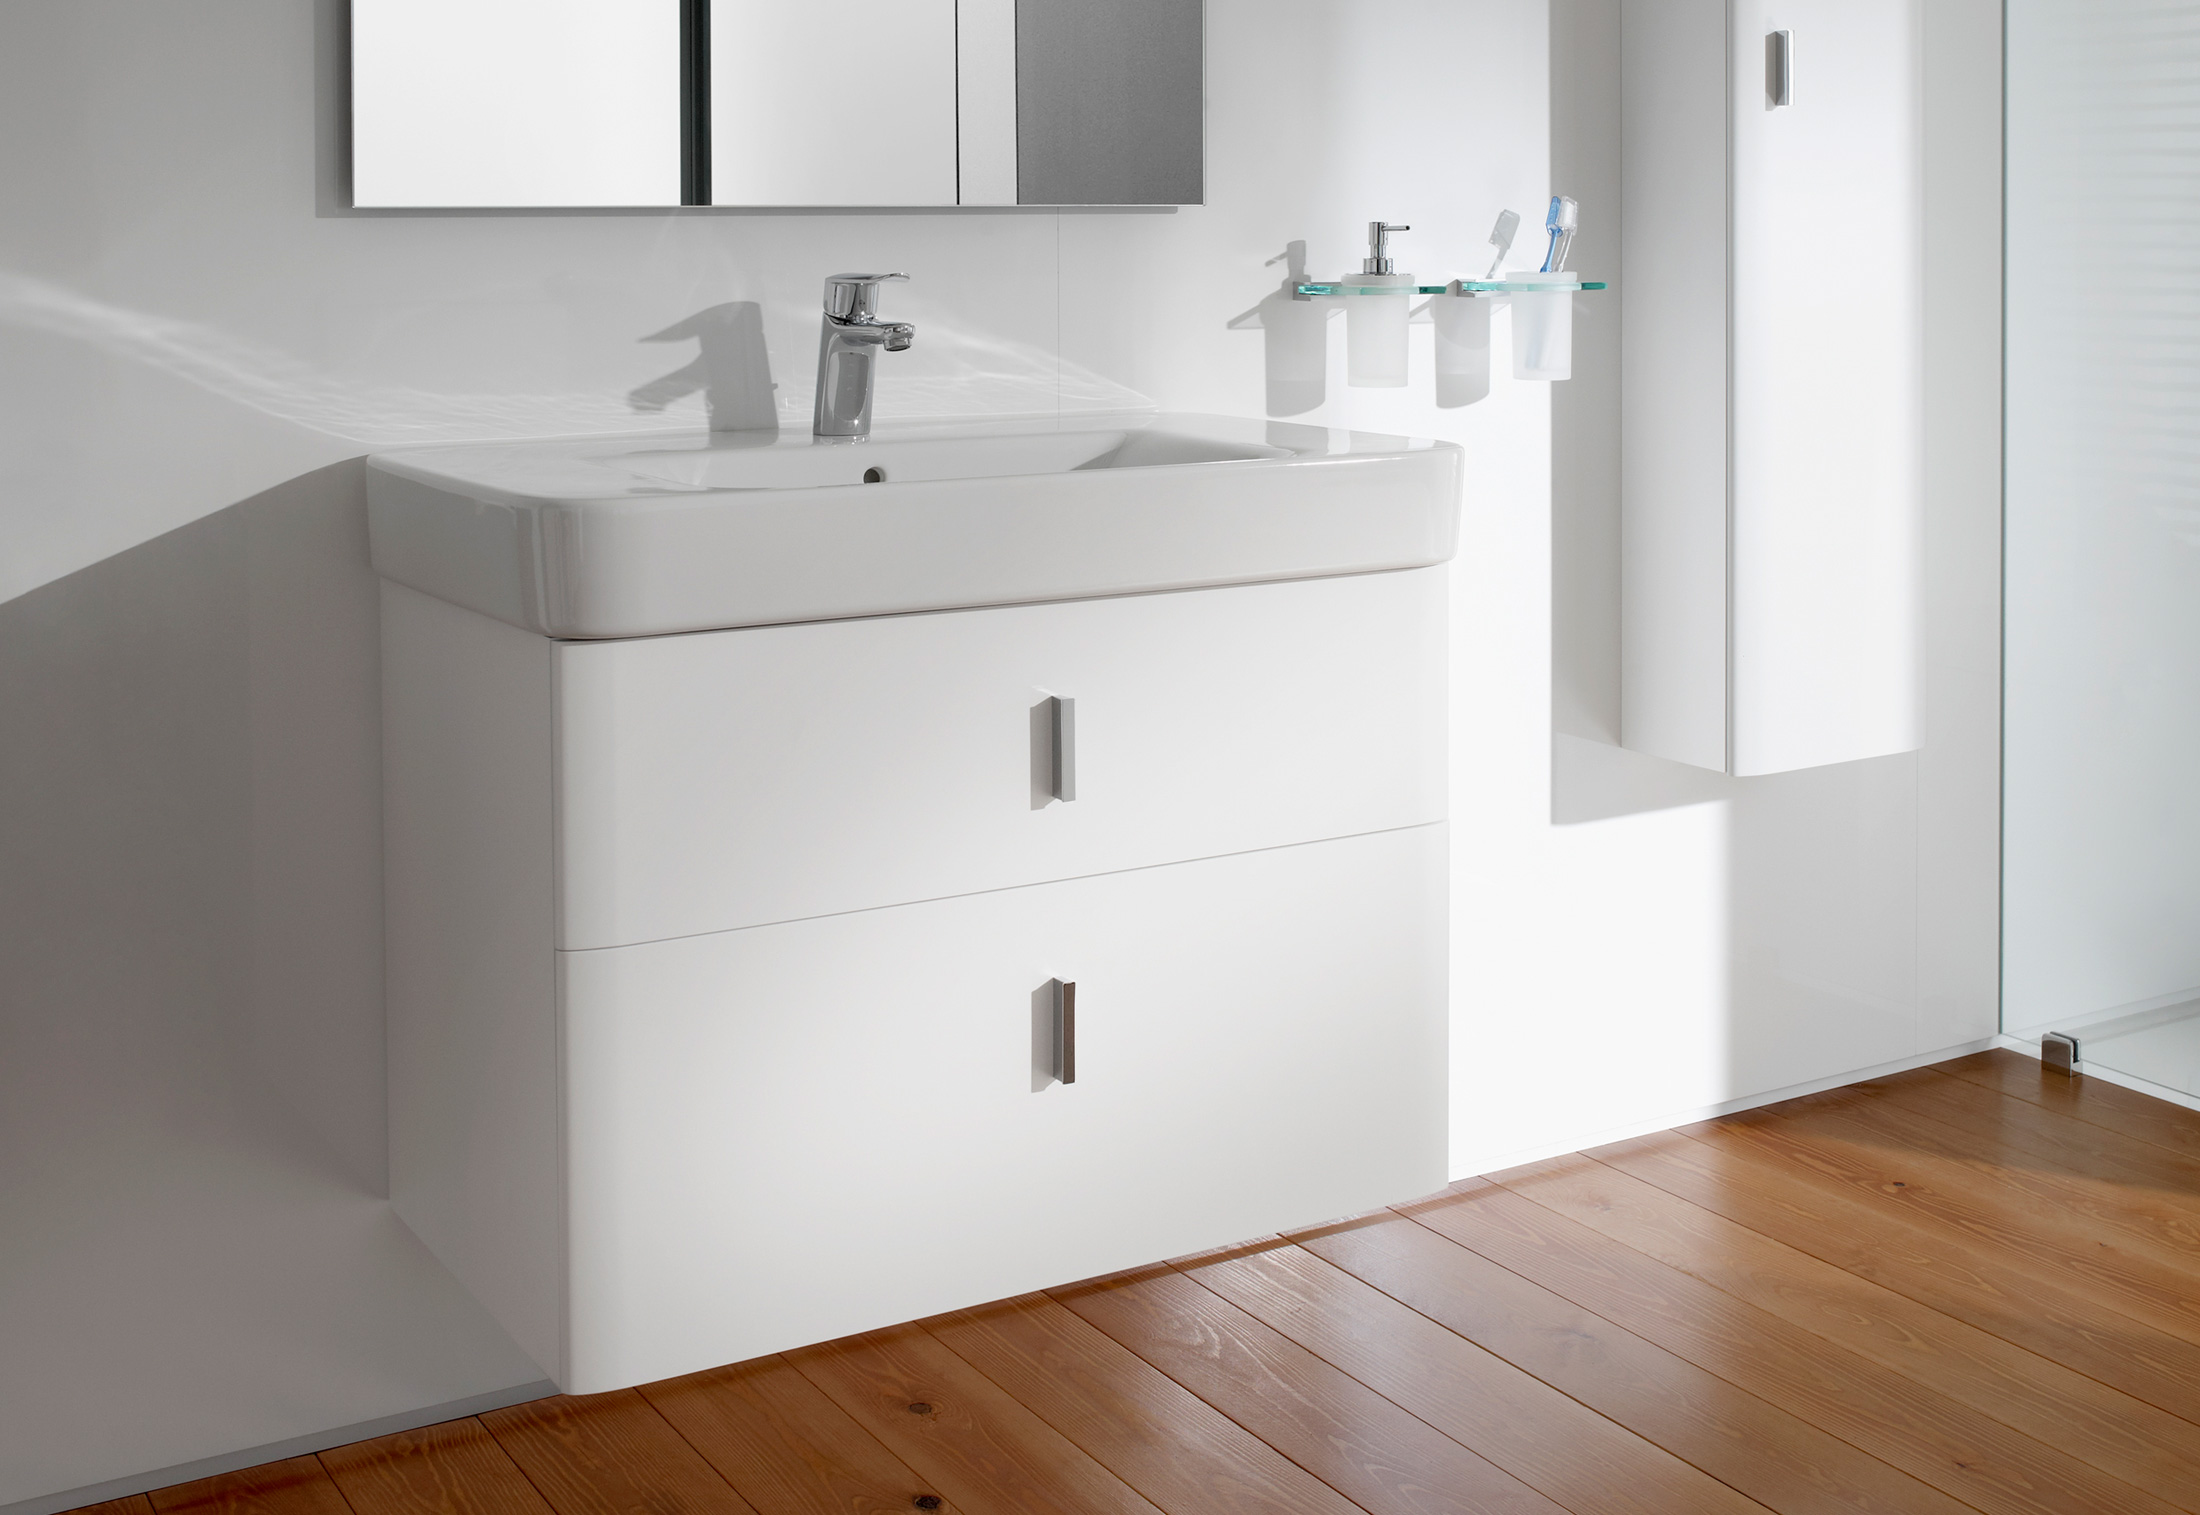 Senso Square wash basin with vanity unit by Roca | STYLEPARK